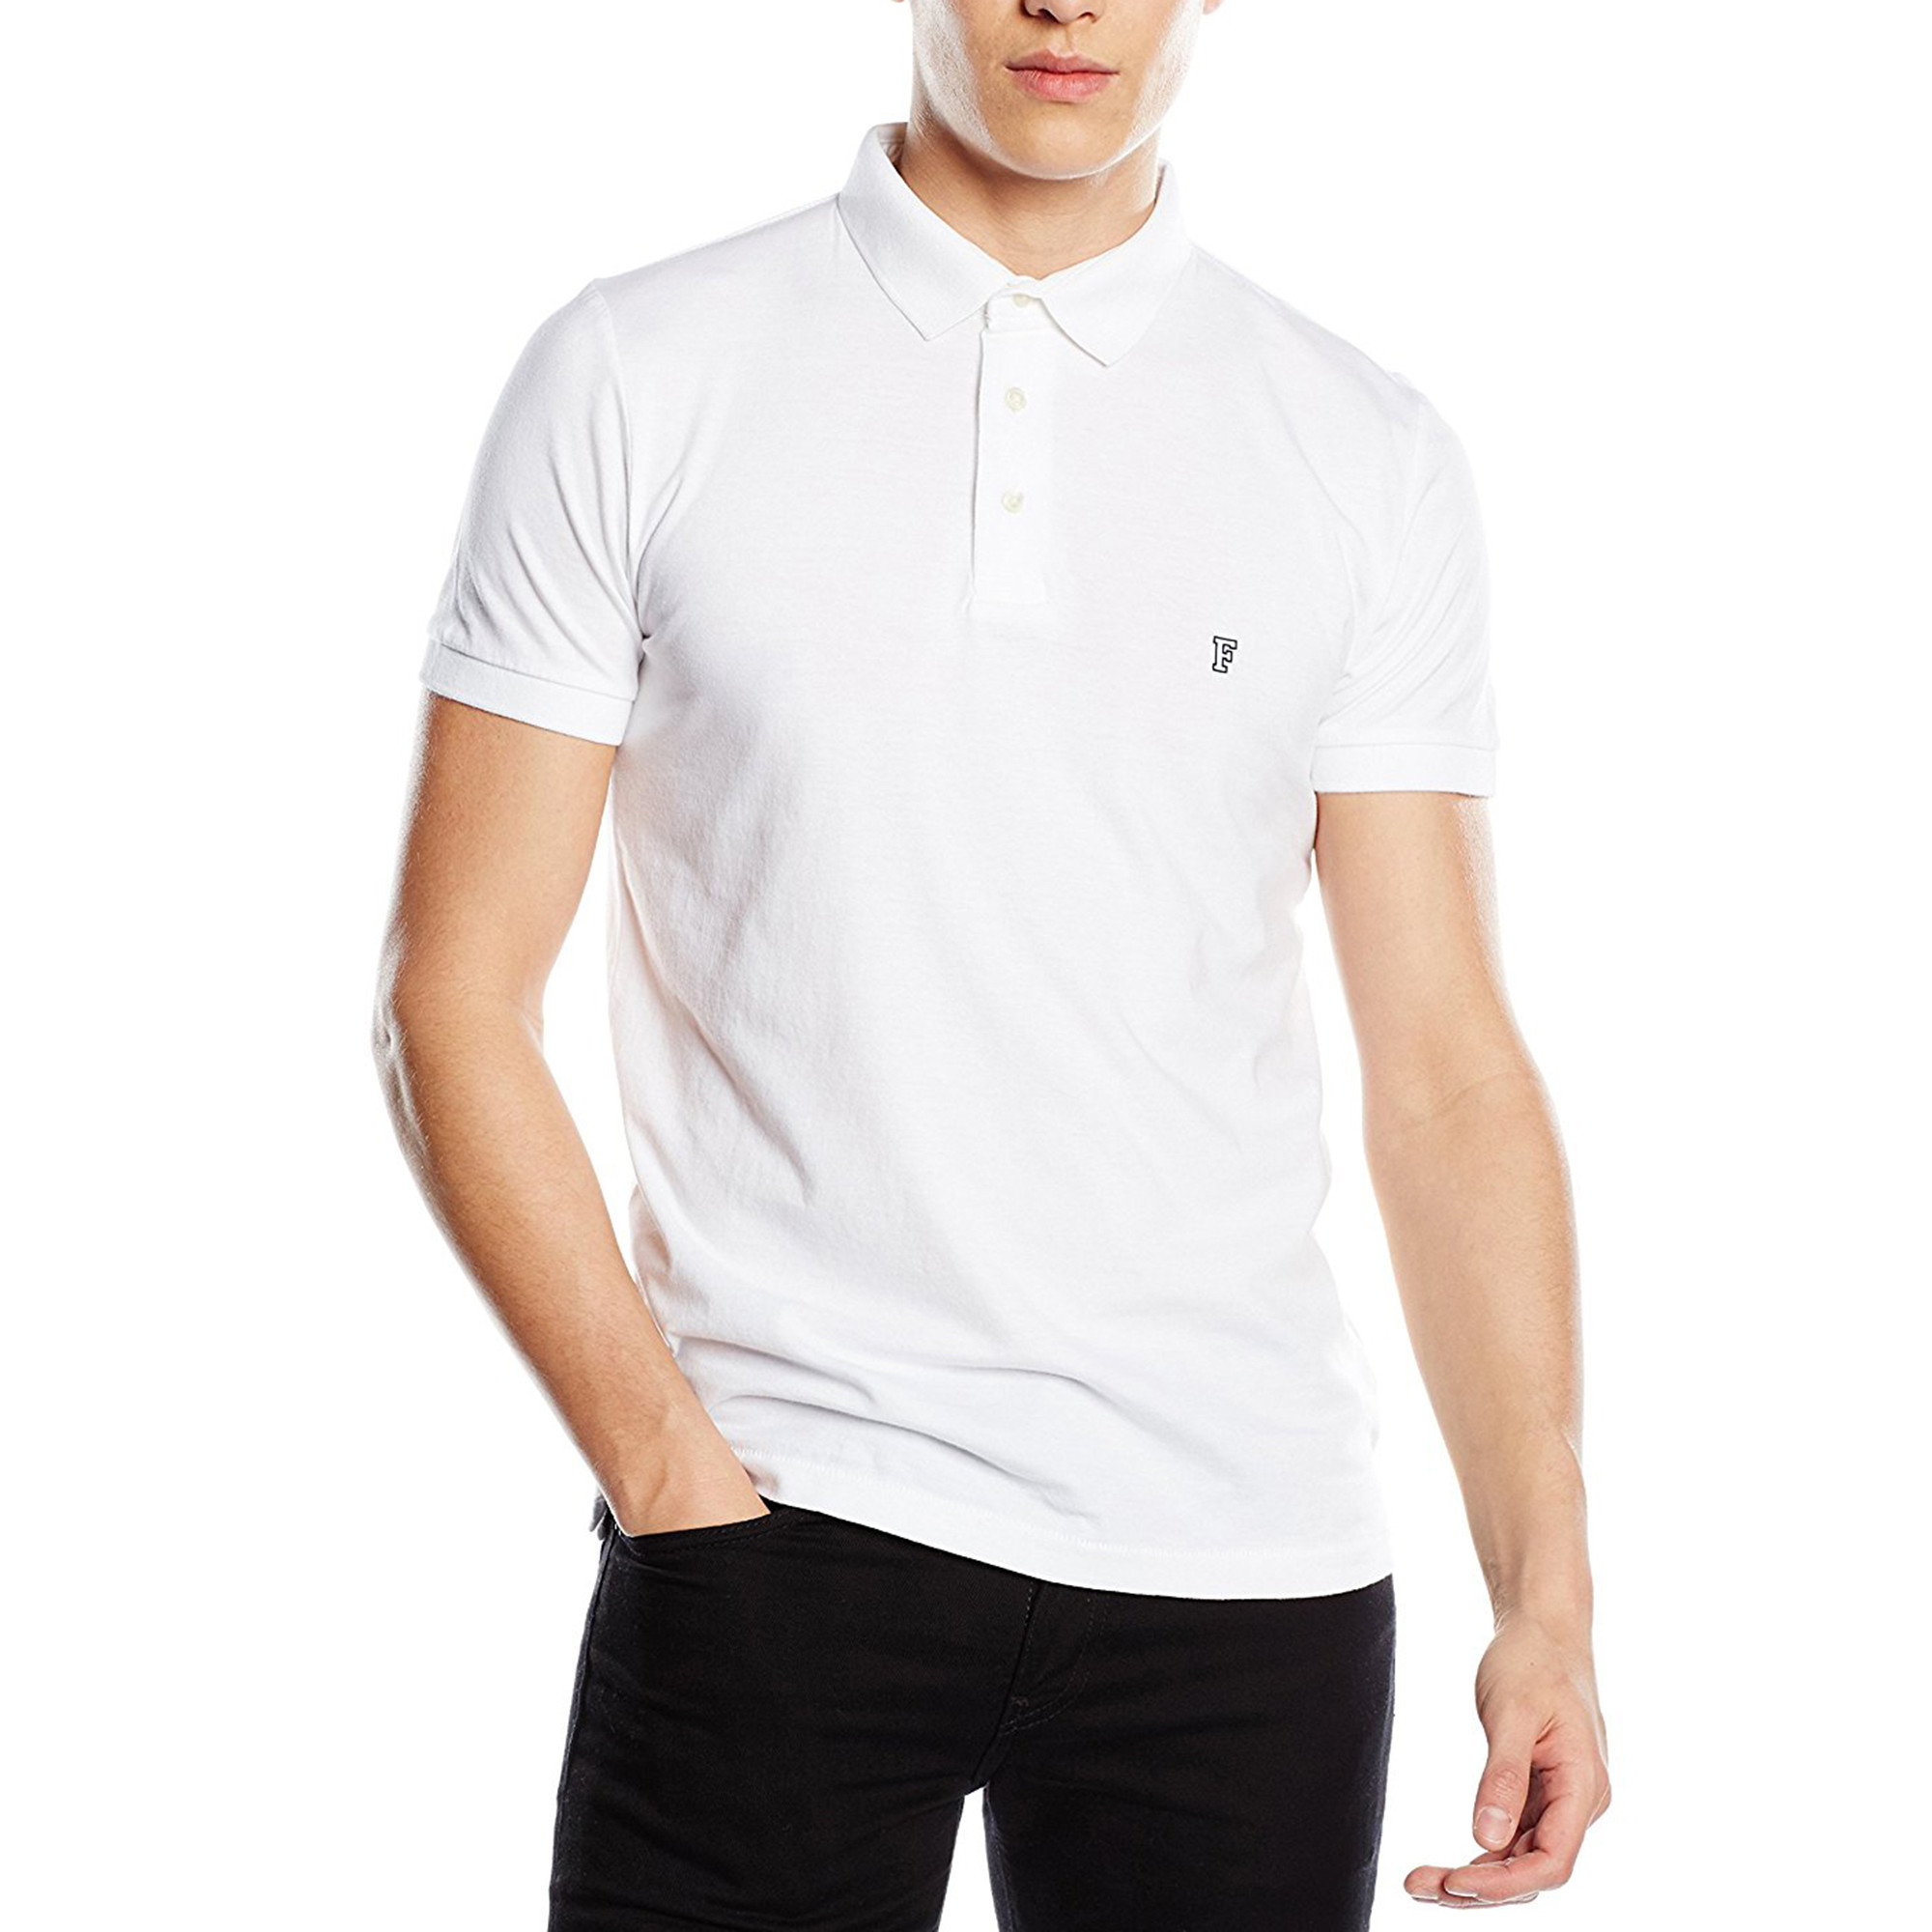 Buy Cheap Footlocker Finishline Mens Basic Sneezy F Logo Polo Shirt French Connection Outlet Sast Low Price Fee Shipping Sale Online Outlet New C7QTgQLp35